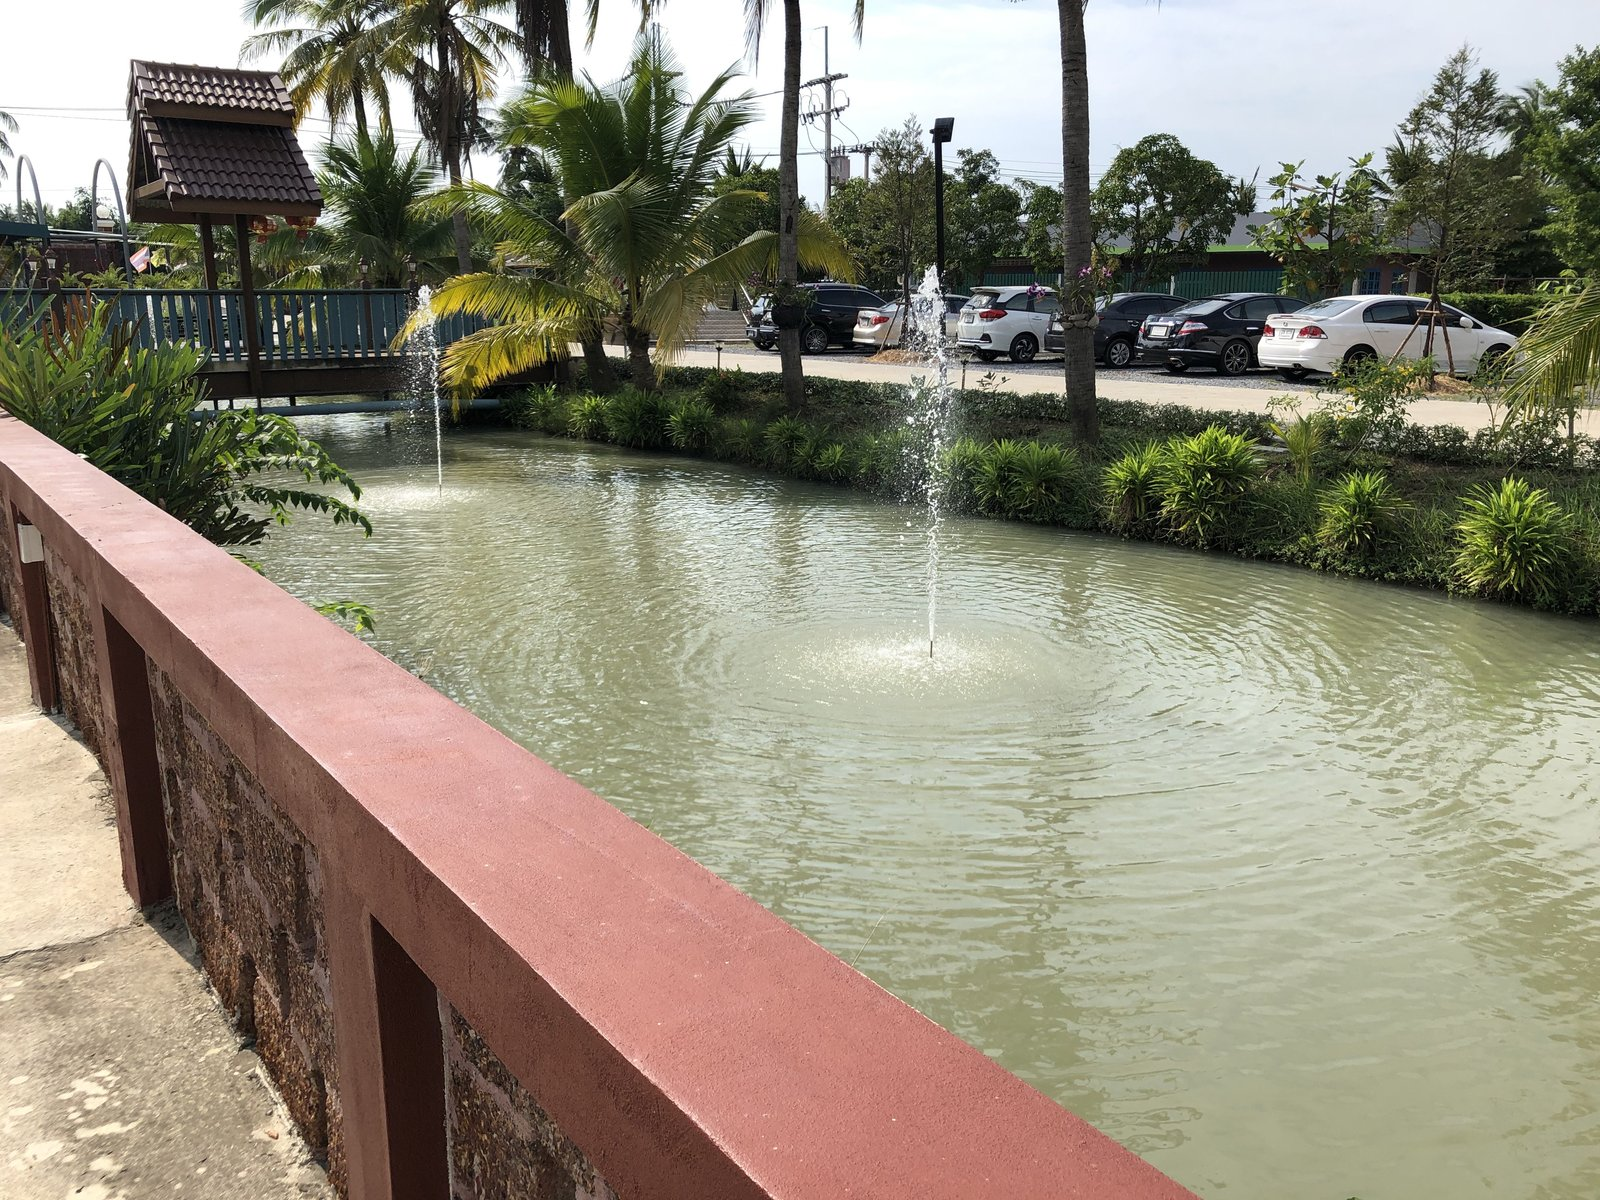 Water area in Nakhon Pathom